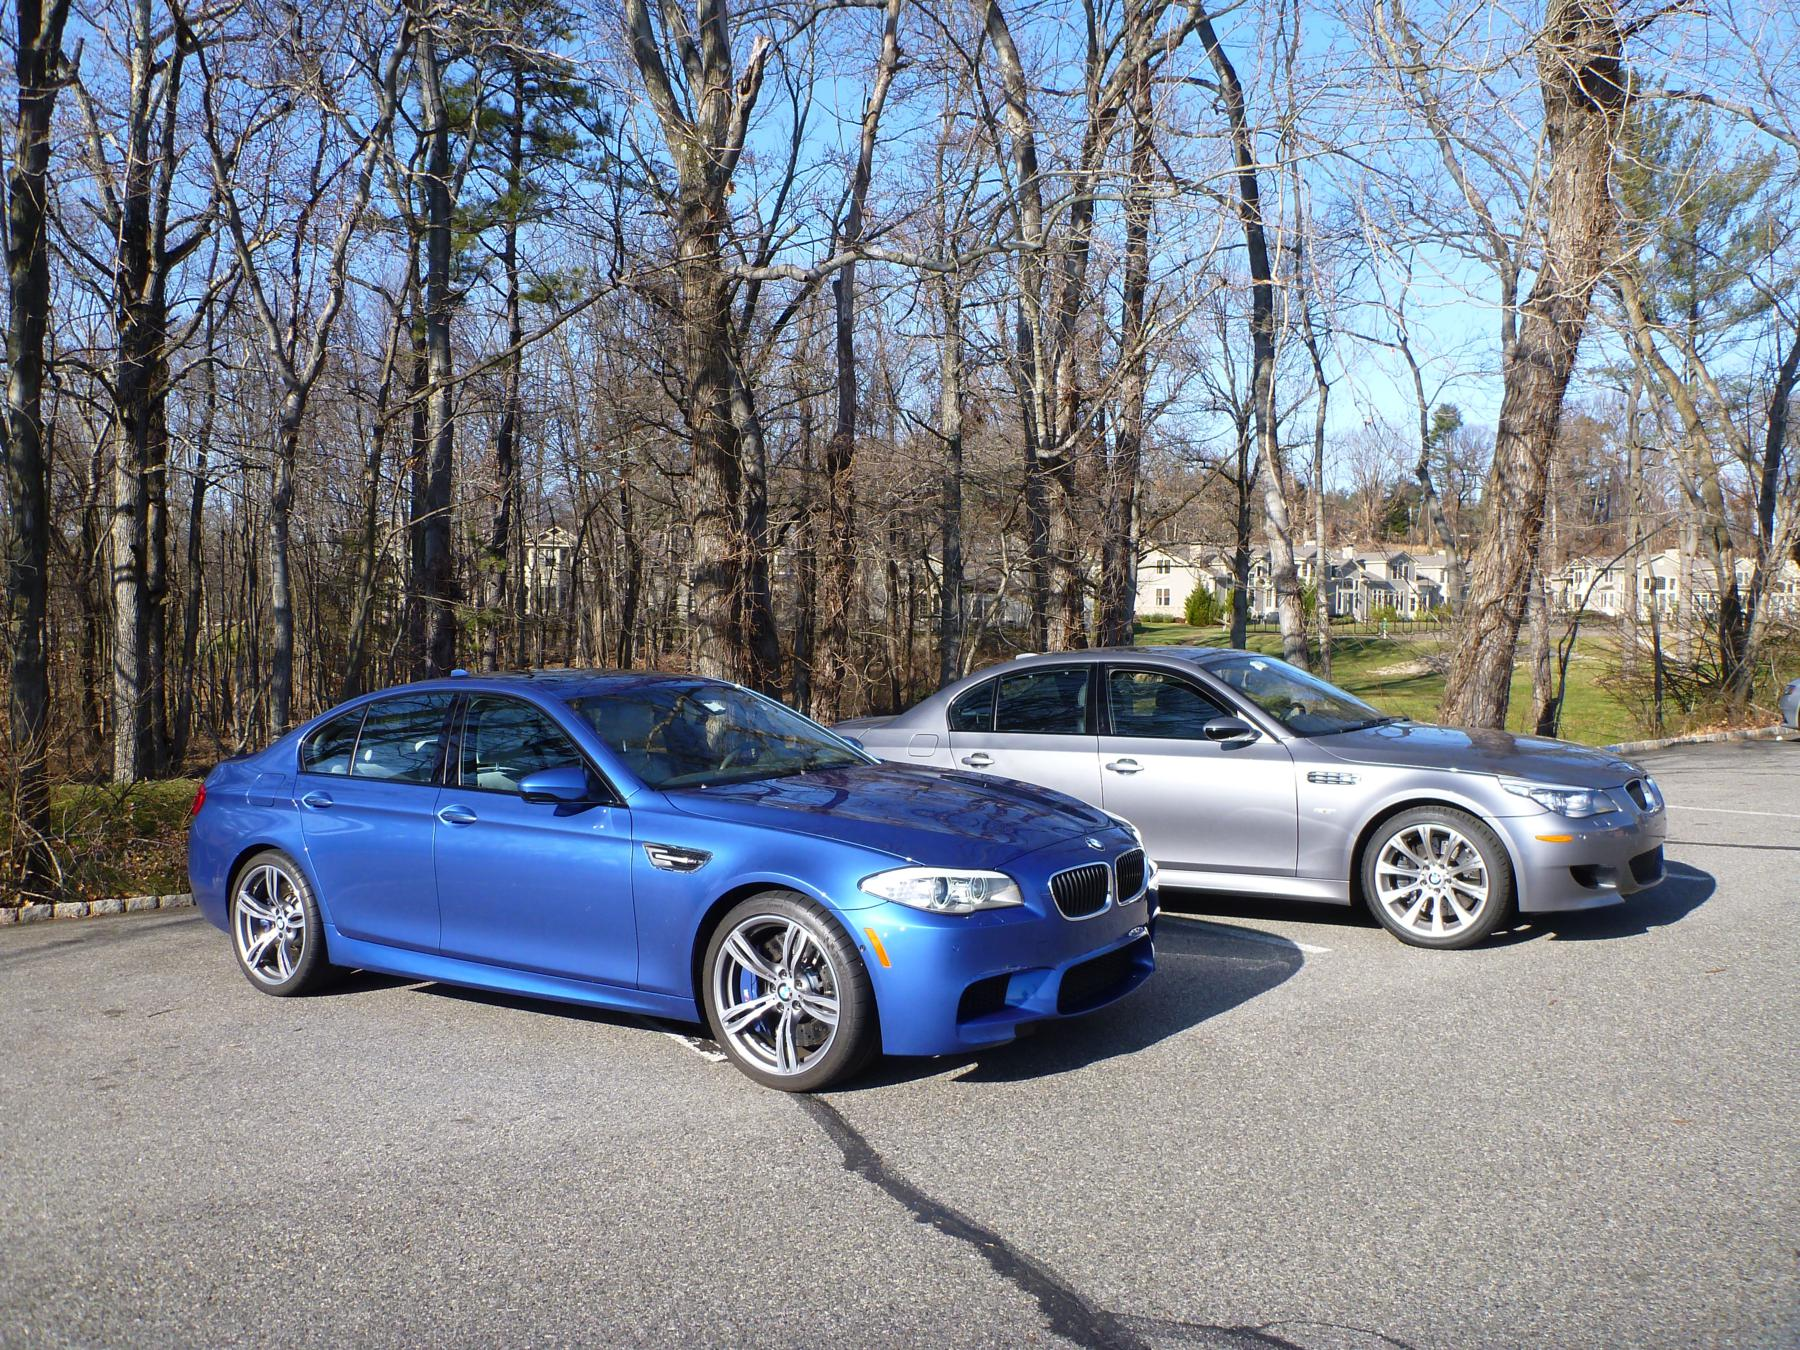 F10 M5 at NJ Cars and Coffee - 12/18/2011-12-18-2011-046_1800x1350.jpg